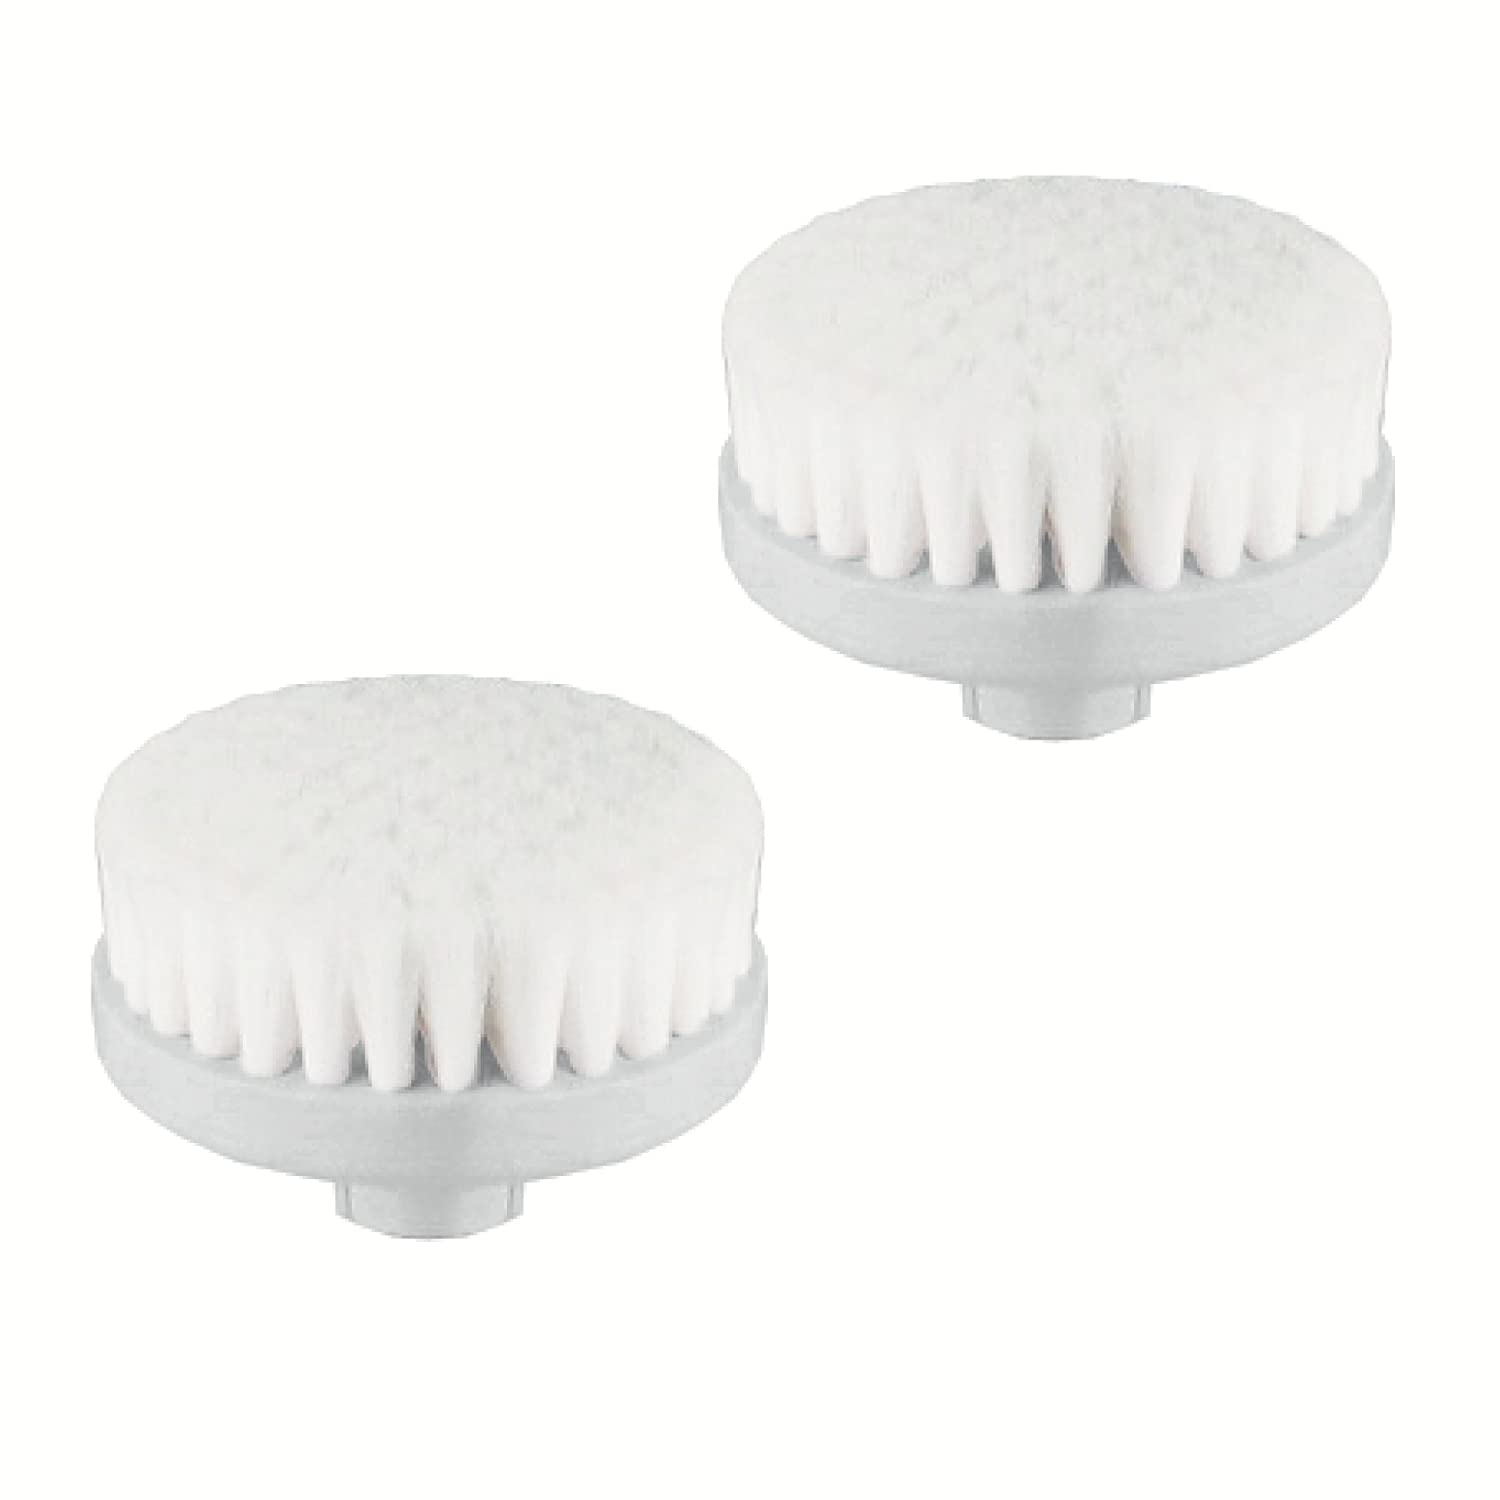 Vanity Planet Exfoliating Facial Brush Heads, 2 count VG34002-0002